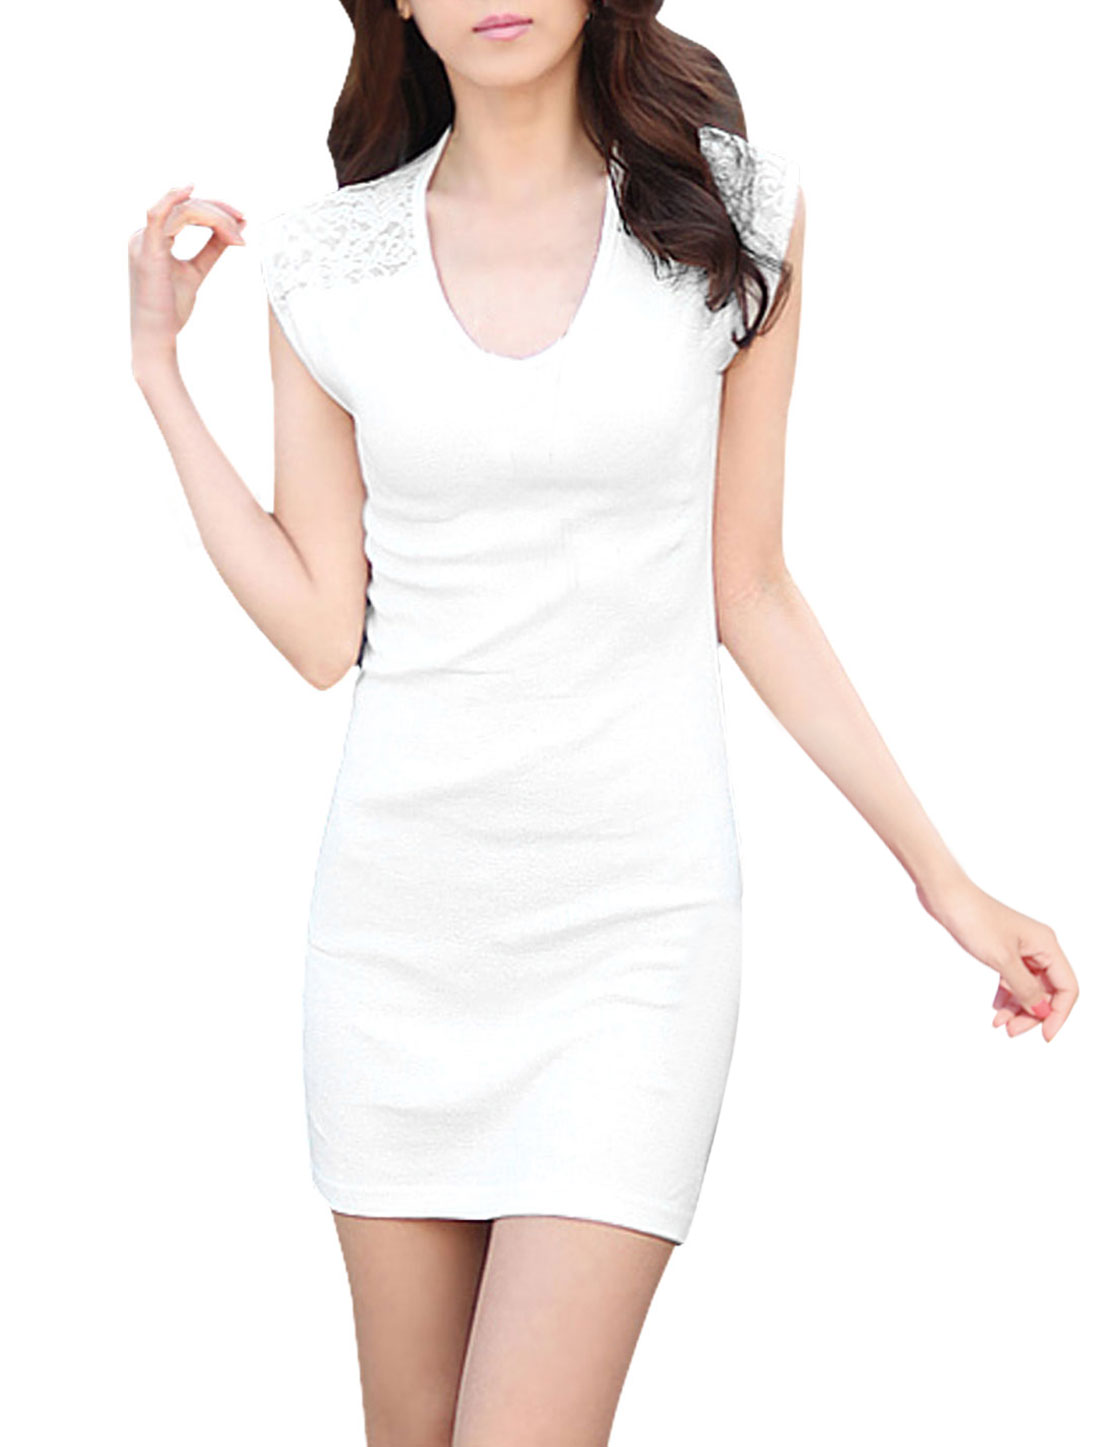 Ladies Cool Lace Panel See Through Slipover Sheathy Dress White M